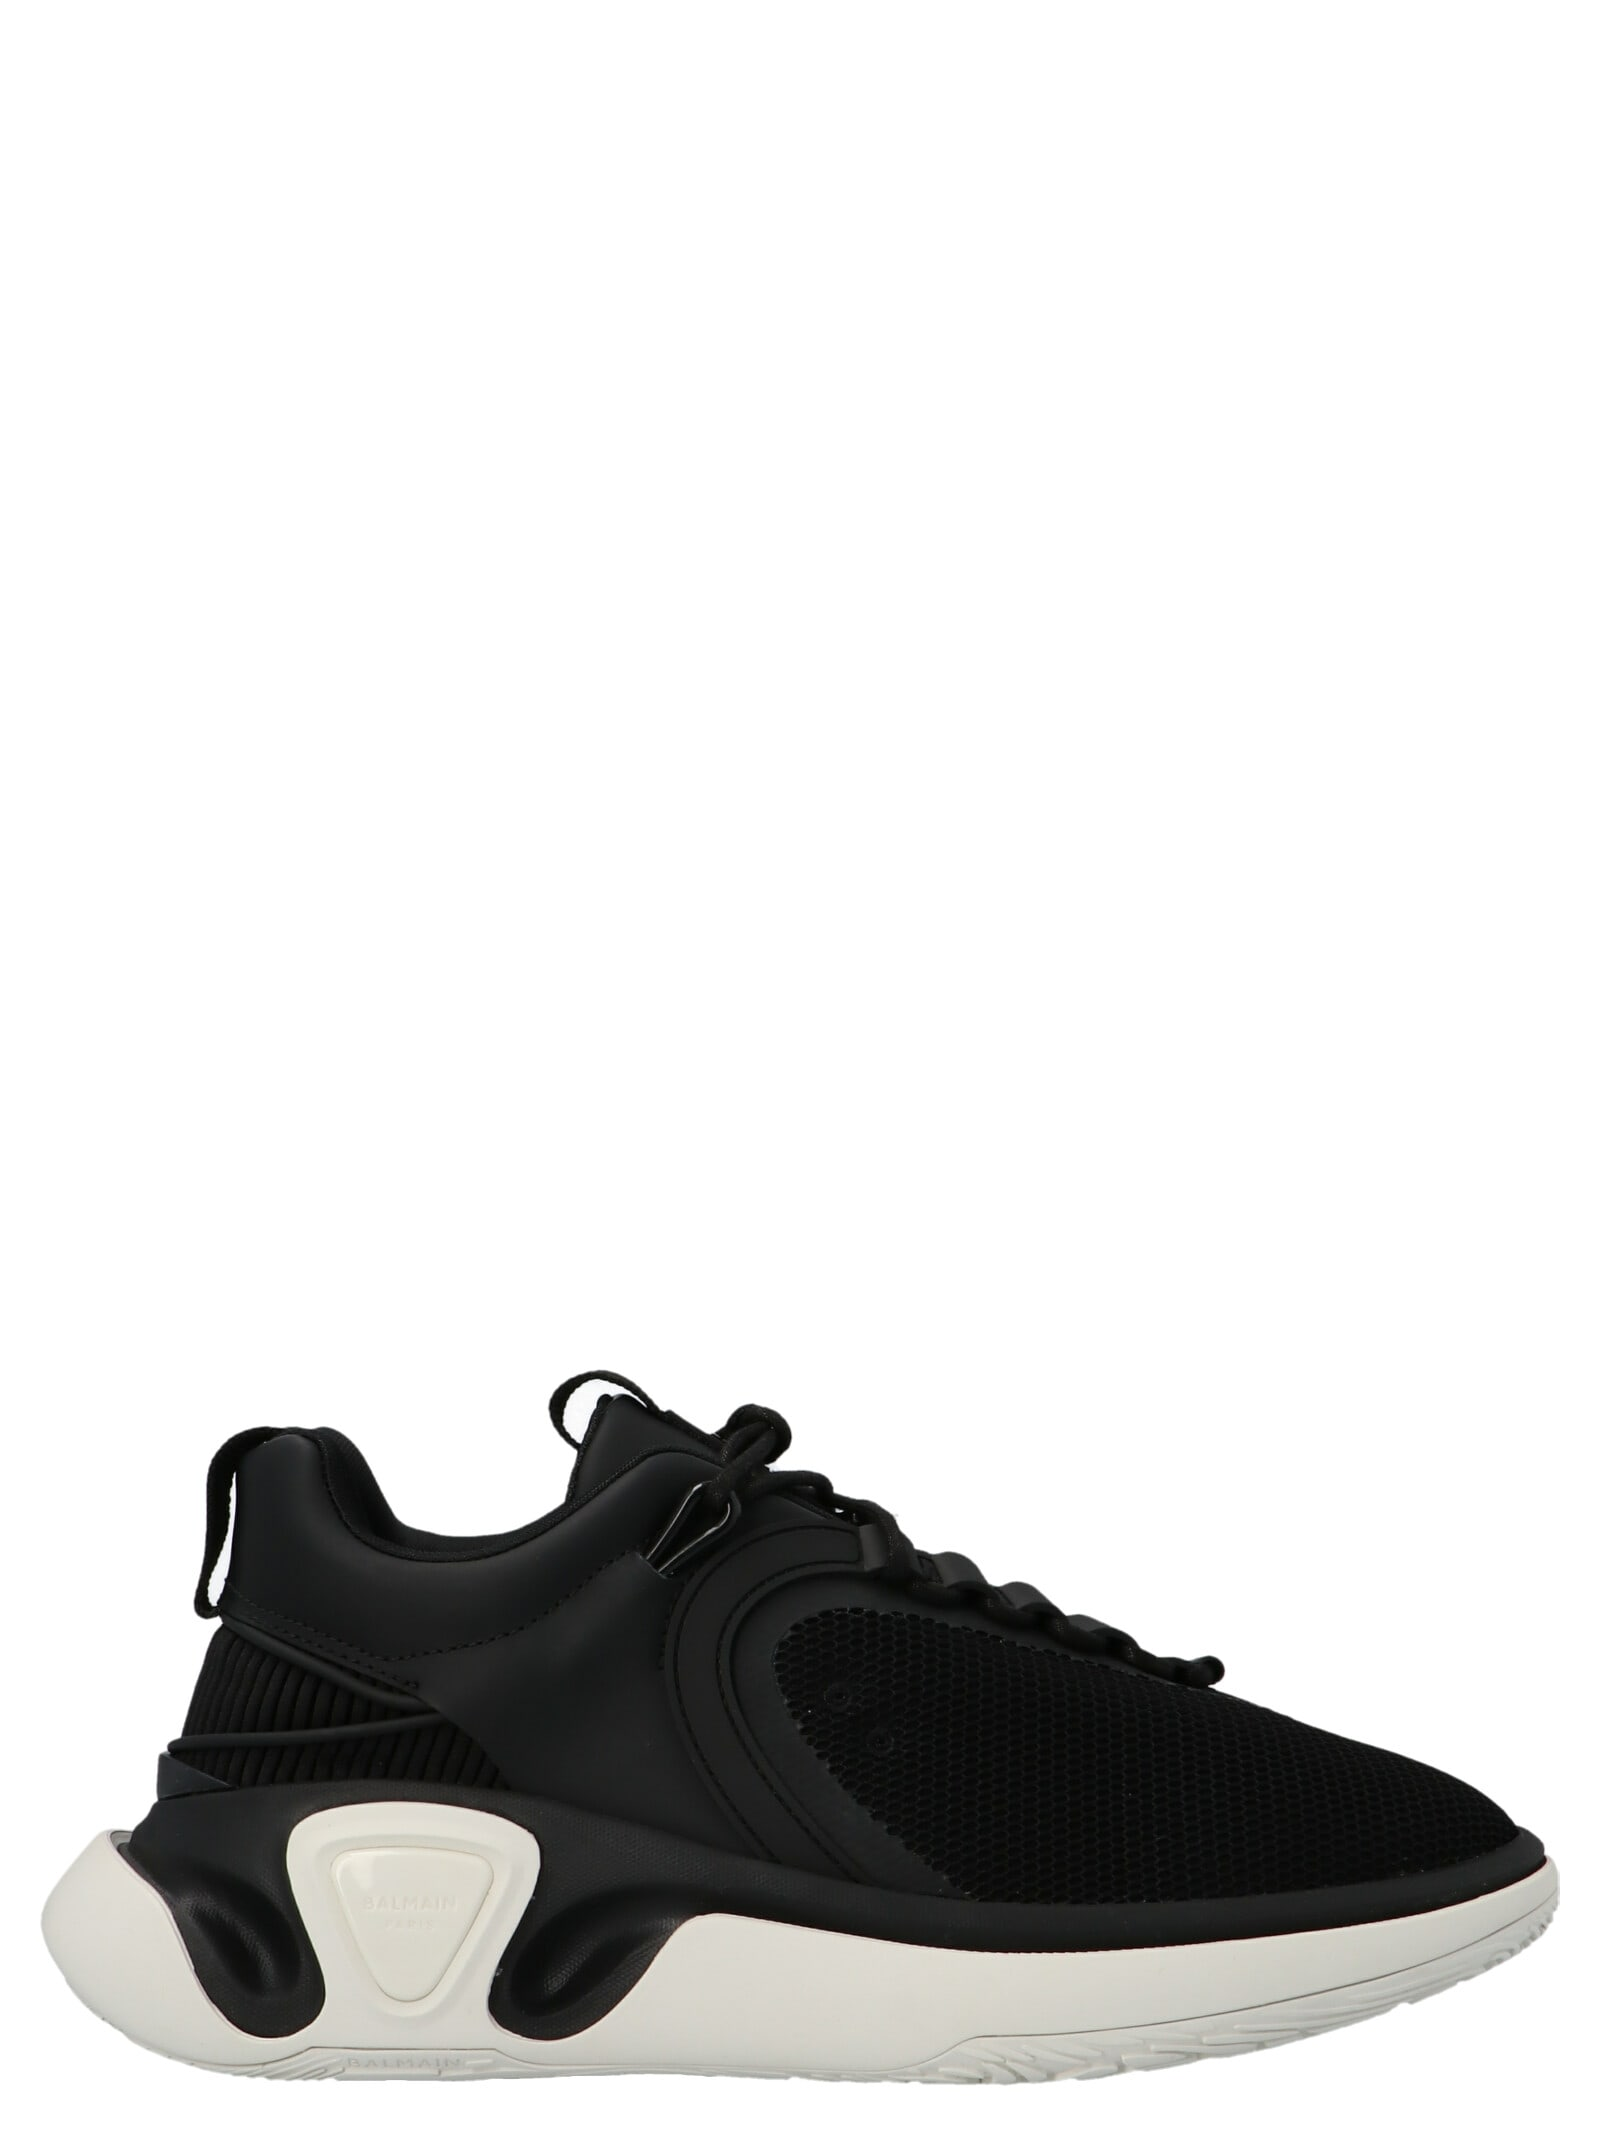 Balmain B RUNNER SHOES